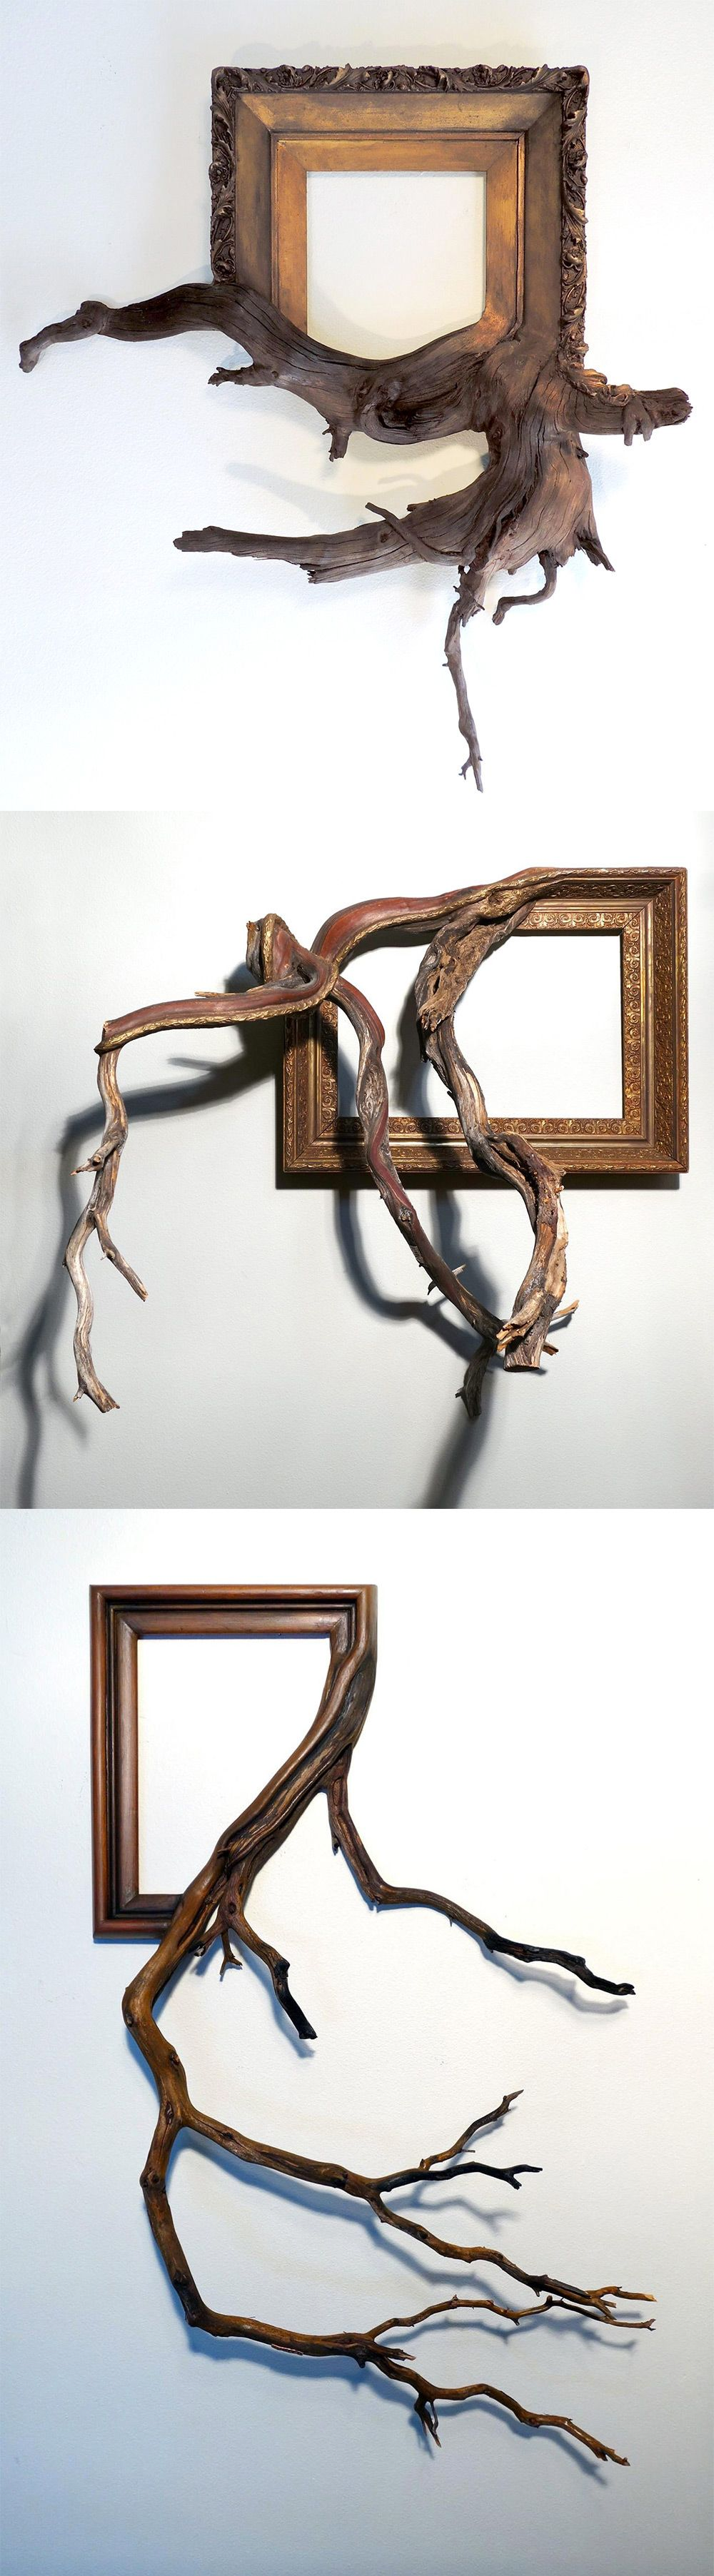 Twisted tree branches fused with ornate picture frames by darryl twisted tree branches fused with ornate picture frames by darryl cox jeuxipadfo Choice Image